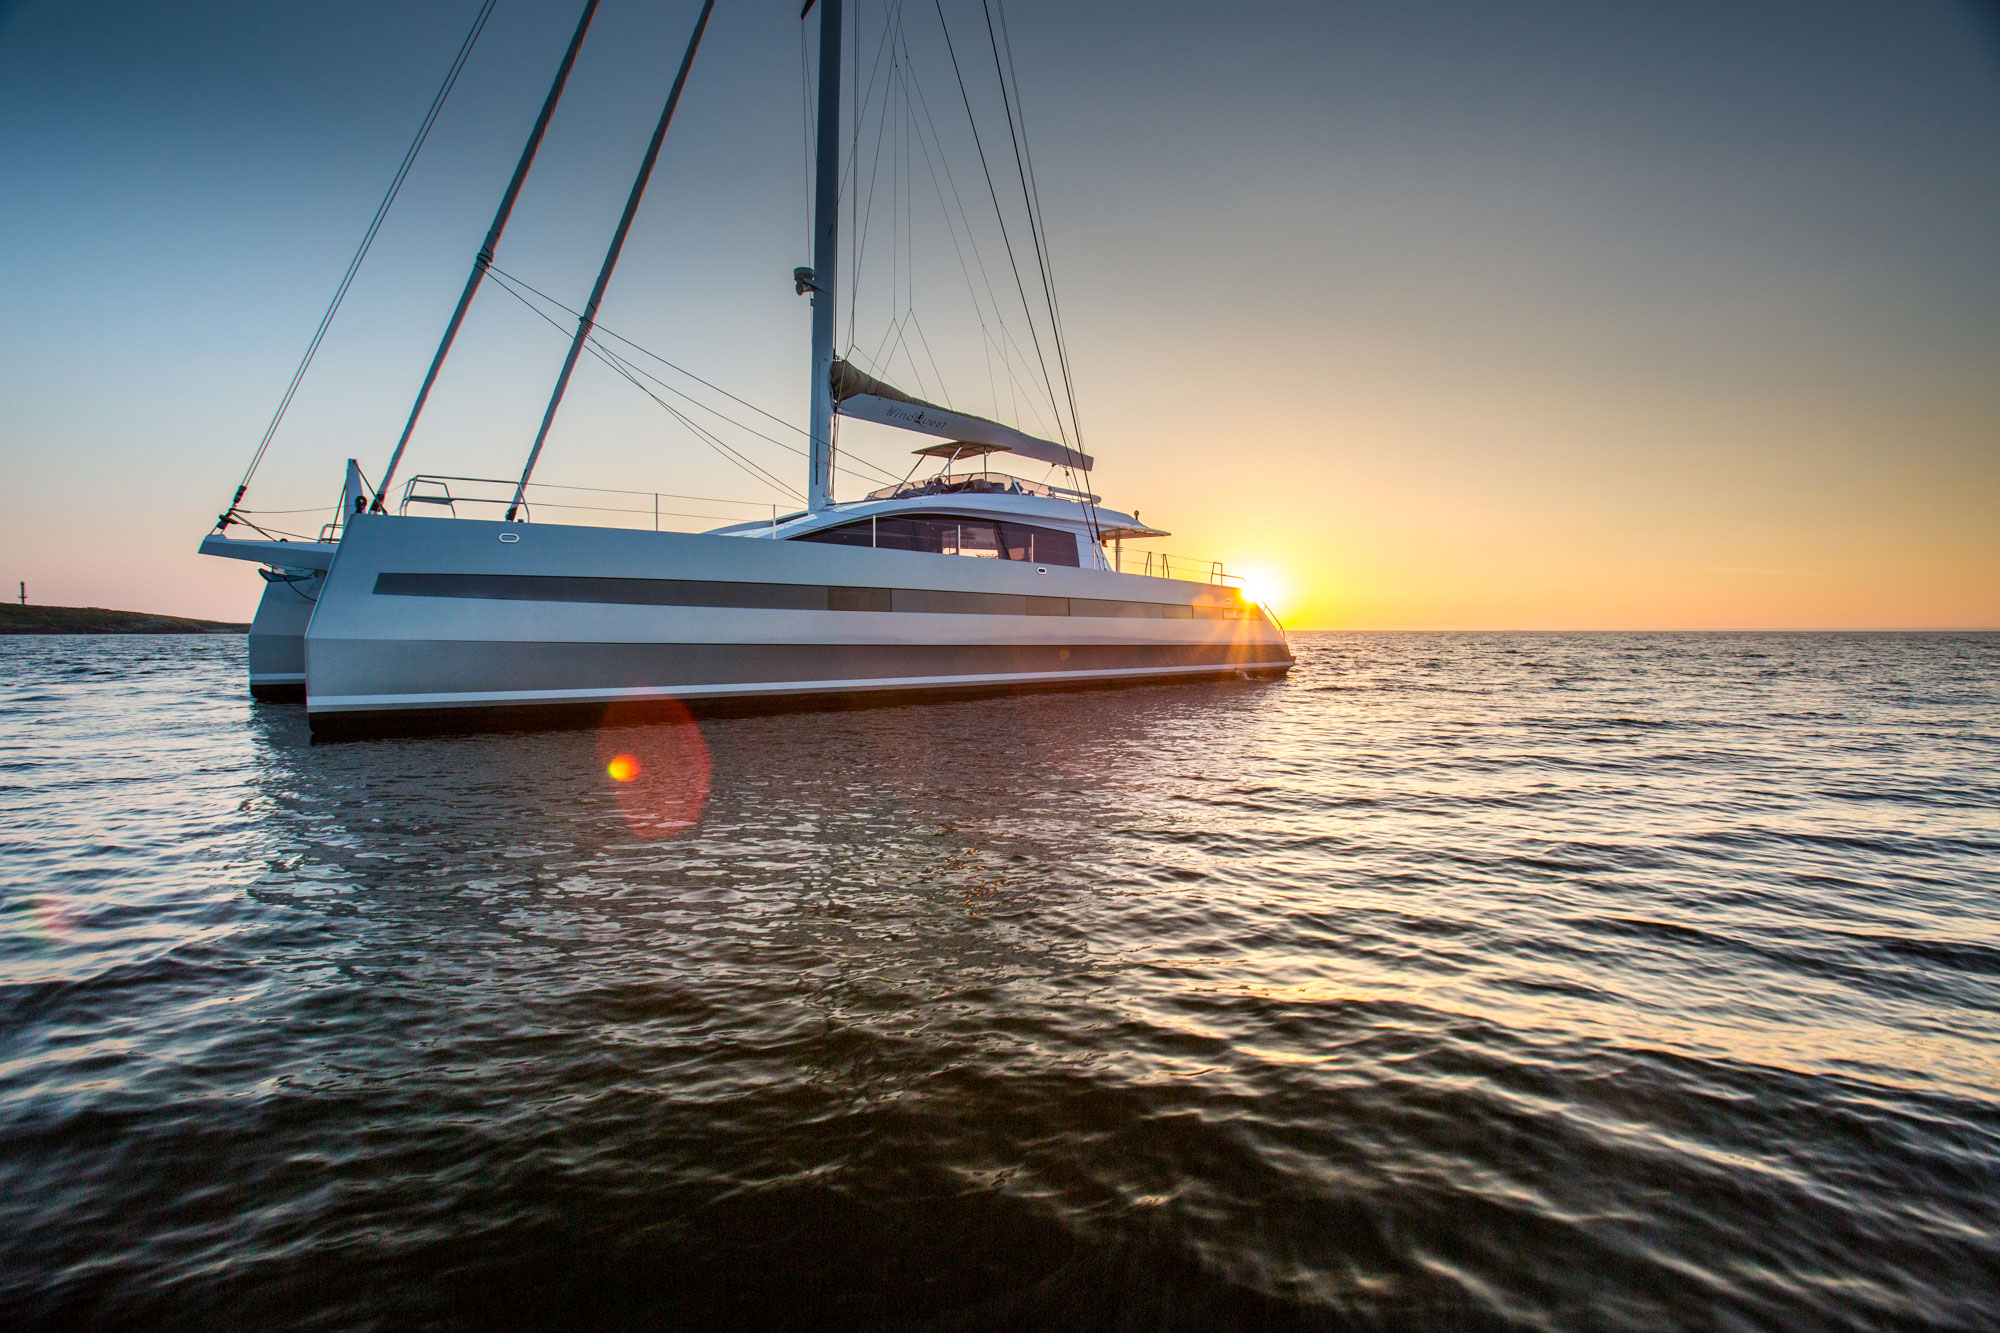 Windquest - Luxury Yacht Charters in the Caribbean